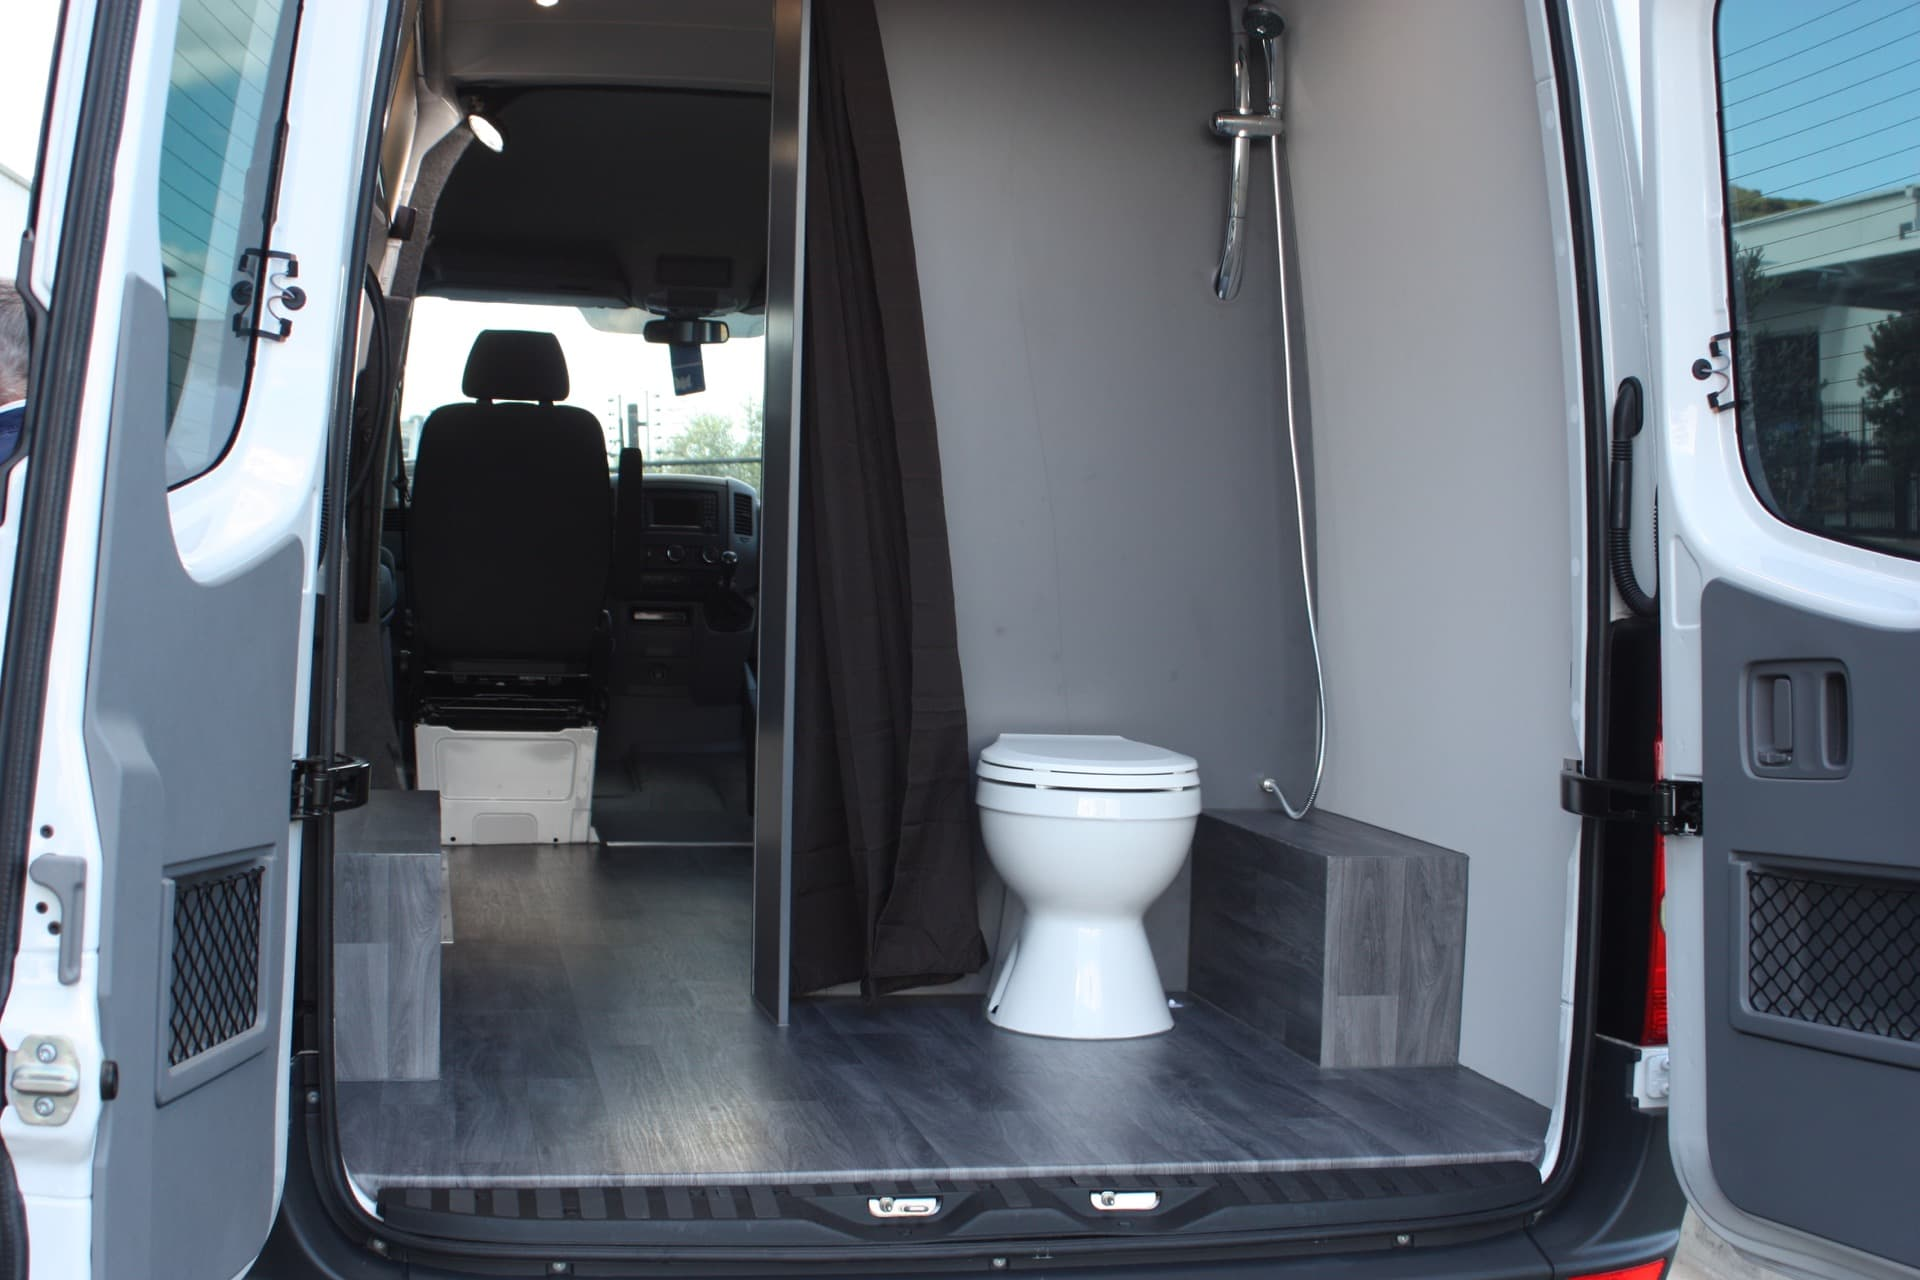 Custom van fitout with toilet